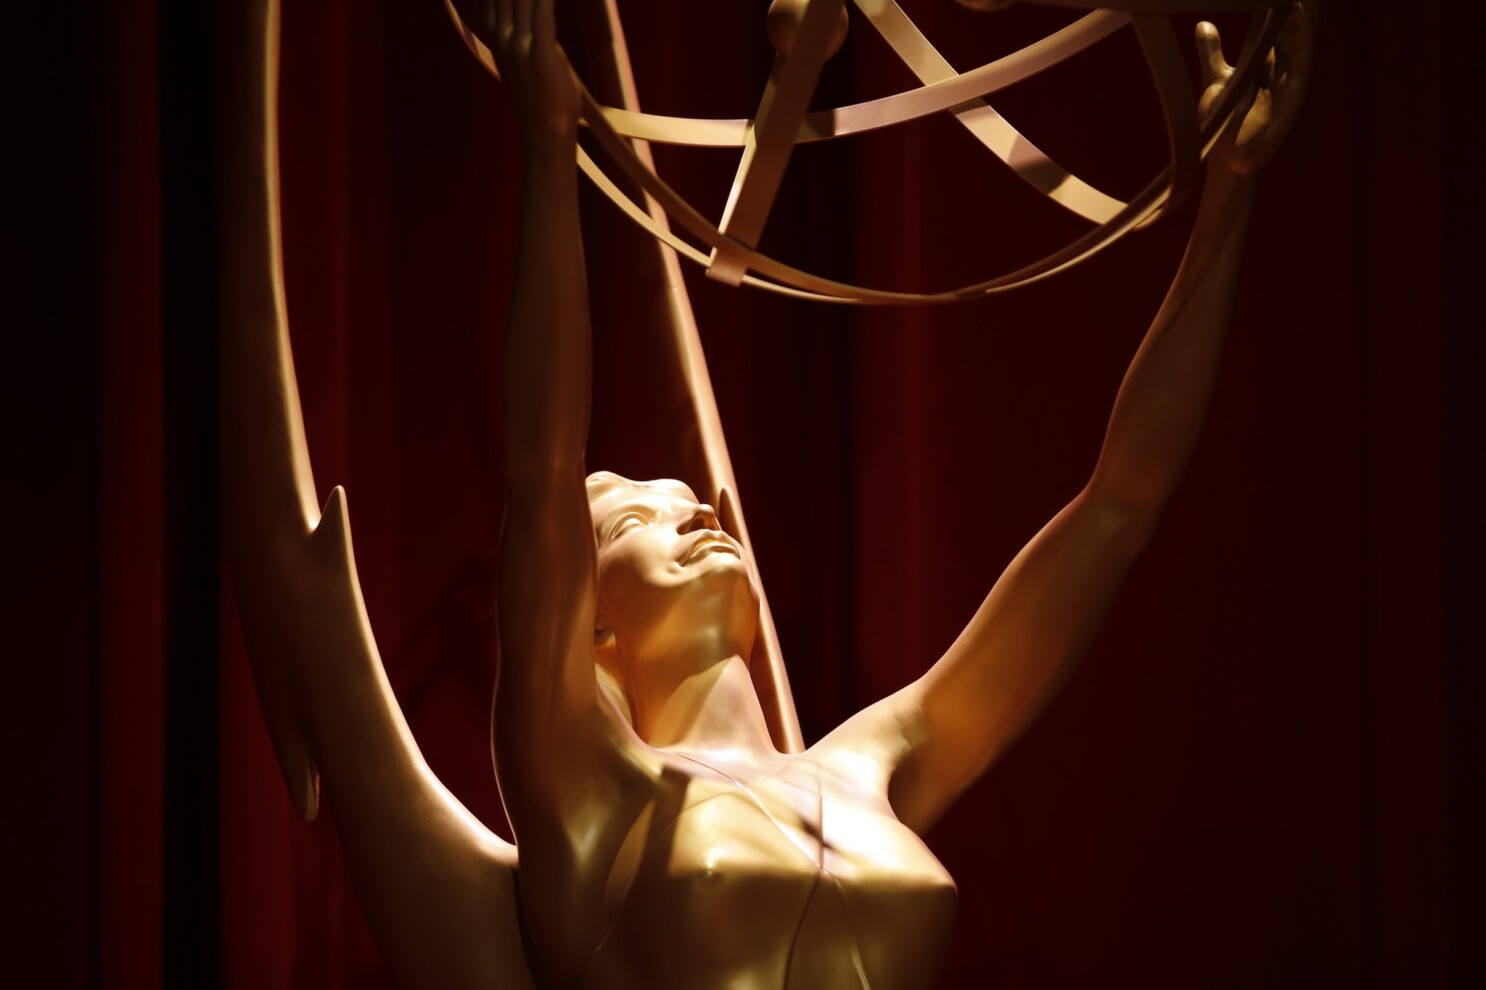 2019 Emmys, following Oscars, to go without host